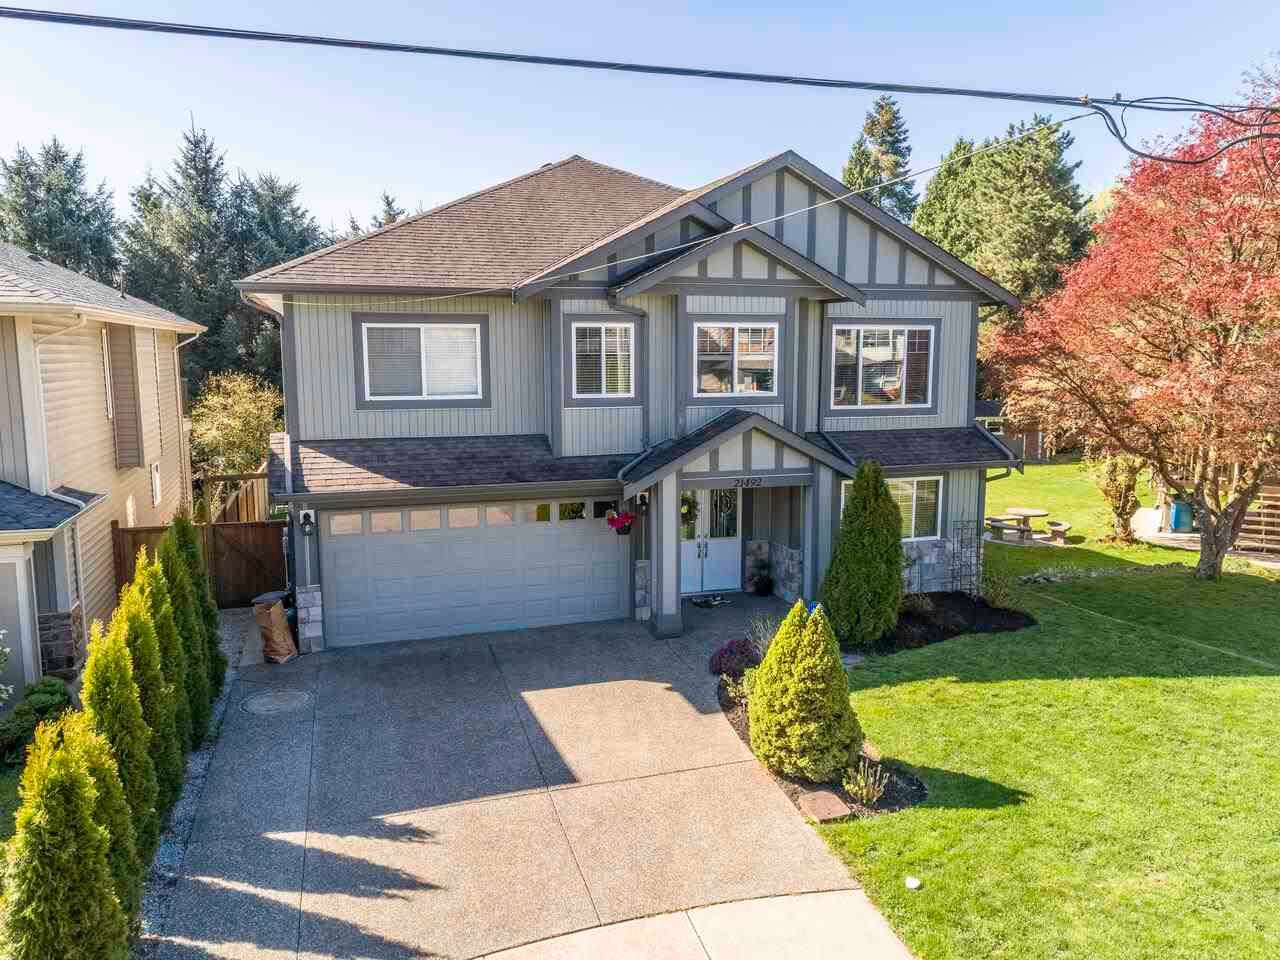 Main Photo: 21492 DONOVAN Avenue in Maple Ridge: West Central House for sale : MLS®# R2580208